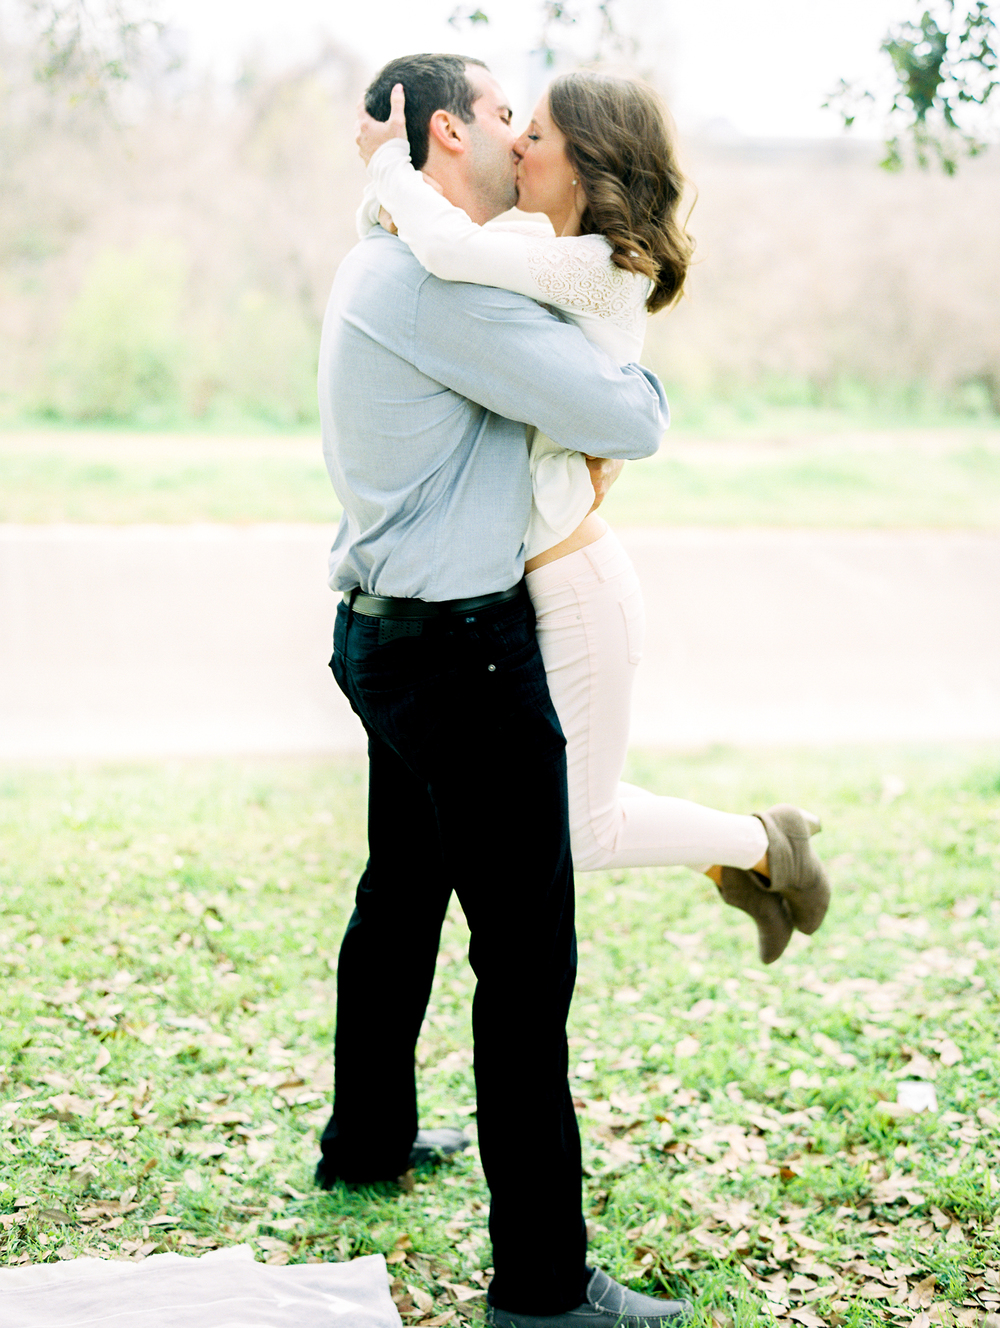 Dana Fernandez Photography Houston Film Wedding Engagement Proposal Photographer Destination Texas-6.jpg